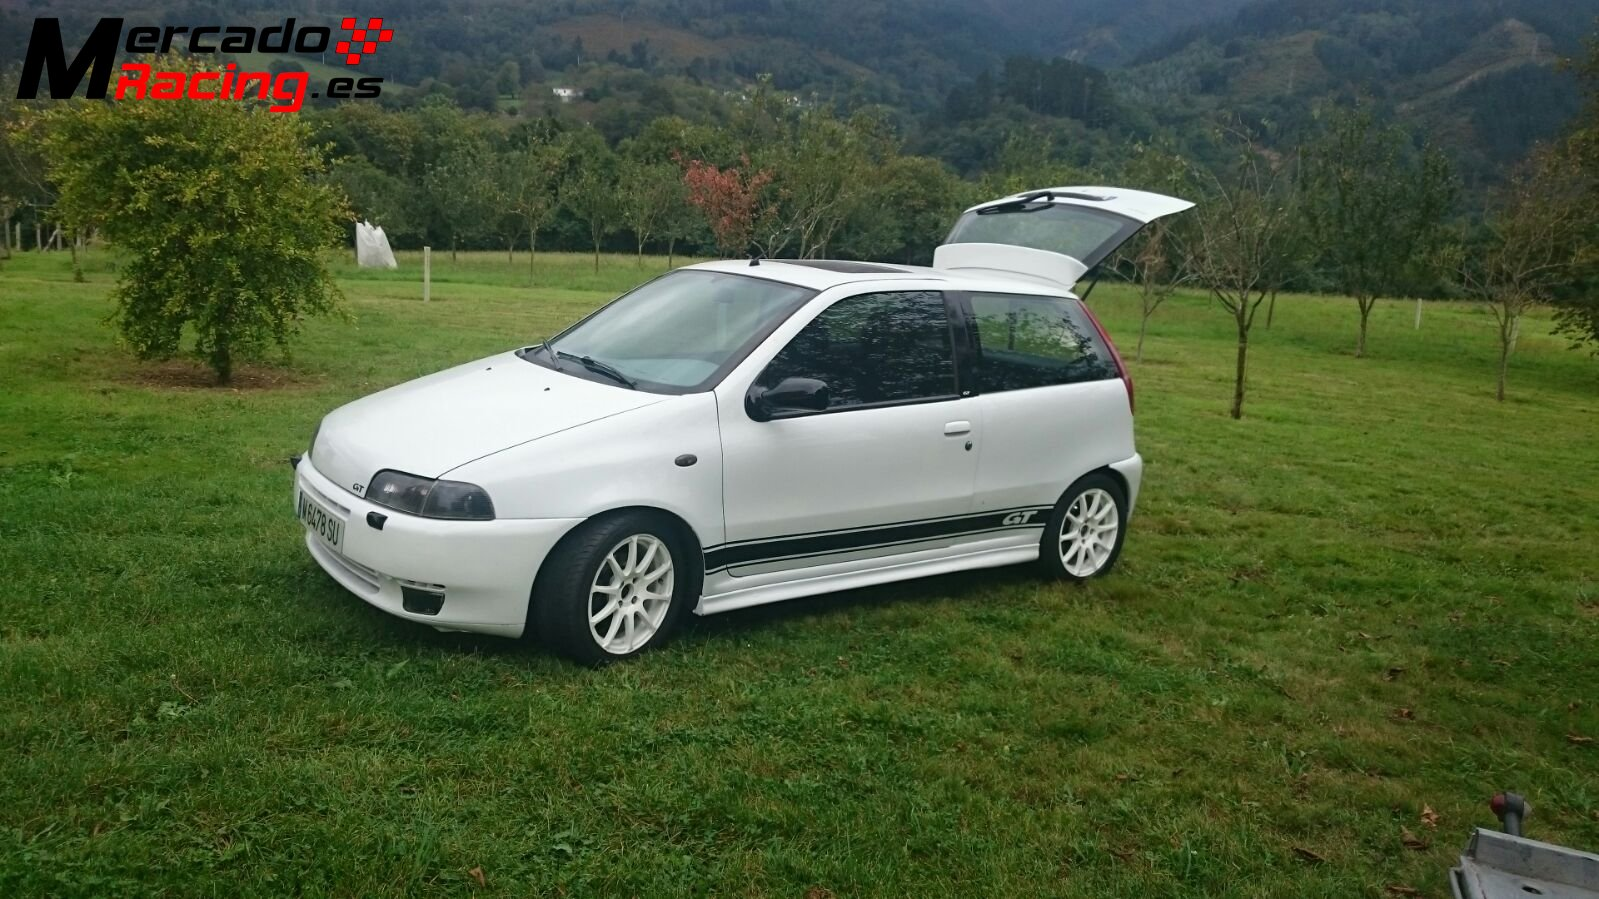 Vendo fiat punto gt turbo impecable mas mucho recambio on peugeot 308 turbo, nissan maxima turbo, jeep patriot turbo, fiat abarth turbo, nissan pulsar turbo, porsche cayenne turbo, audi q7 turbo, mitsubishi colt turbo, mini turbo, fiat uno turbo, audi a3 turbo, suzuki cultus turbo, volvo c70 turbo, nissan juke turbo, volkswagen golf turbo, toyota prius turbo, fiat coupe turbo, fiat 147 turbo, renault 5 turbo, honda beat turbo,